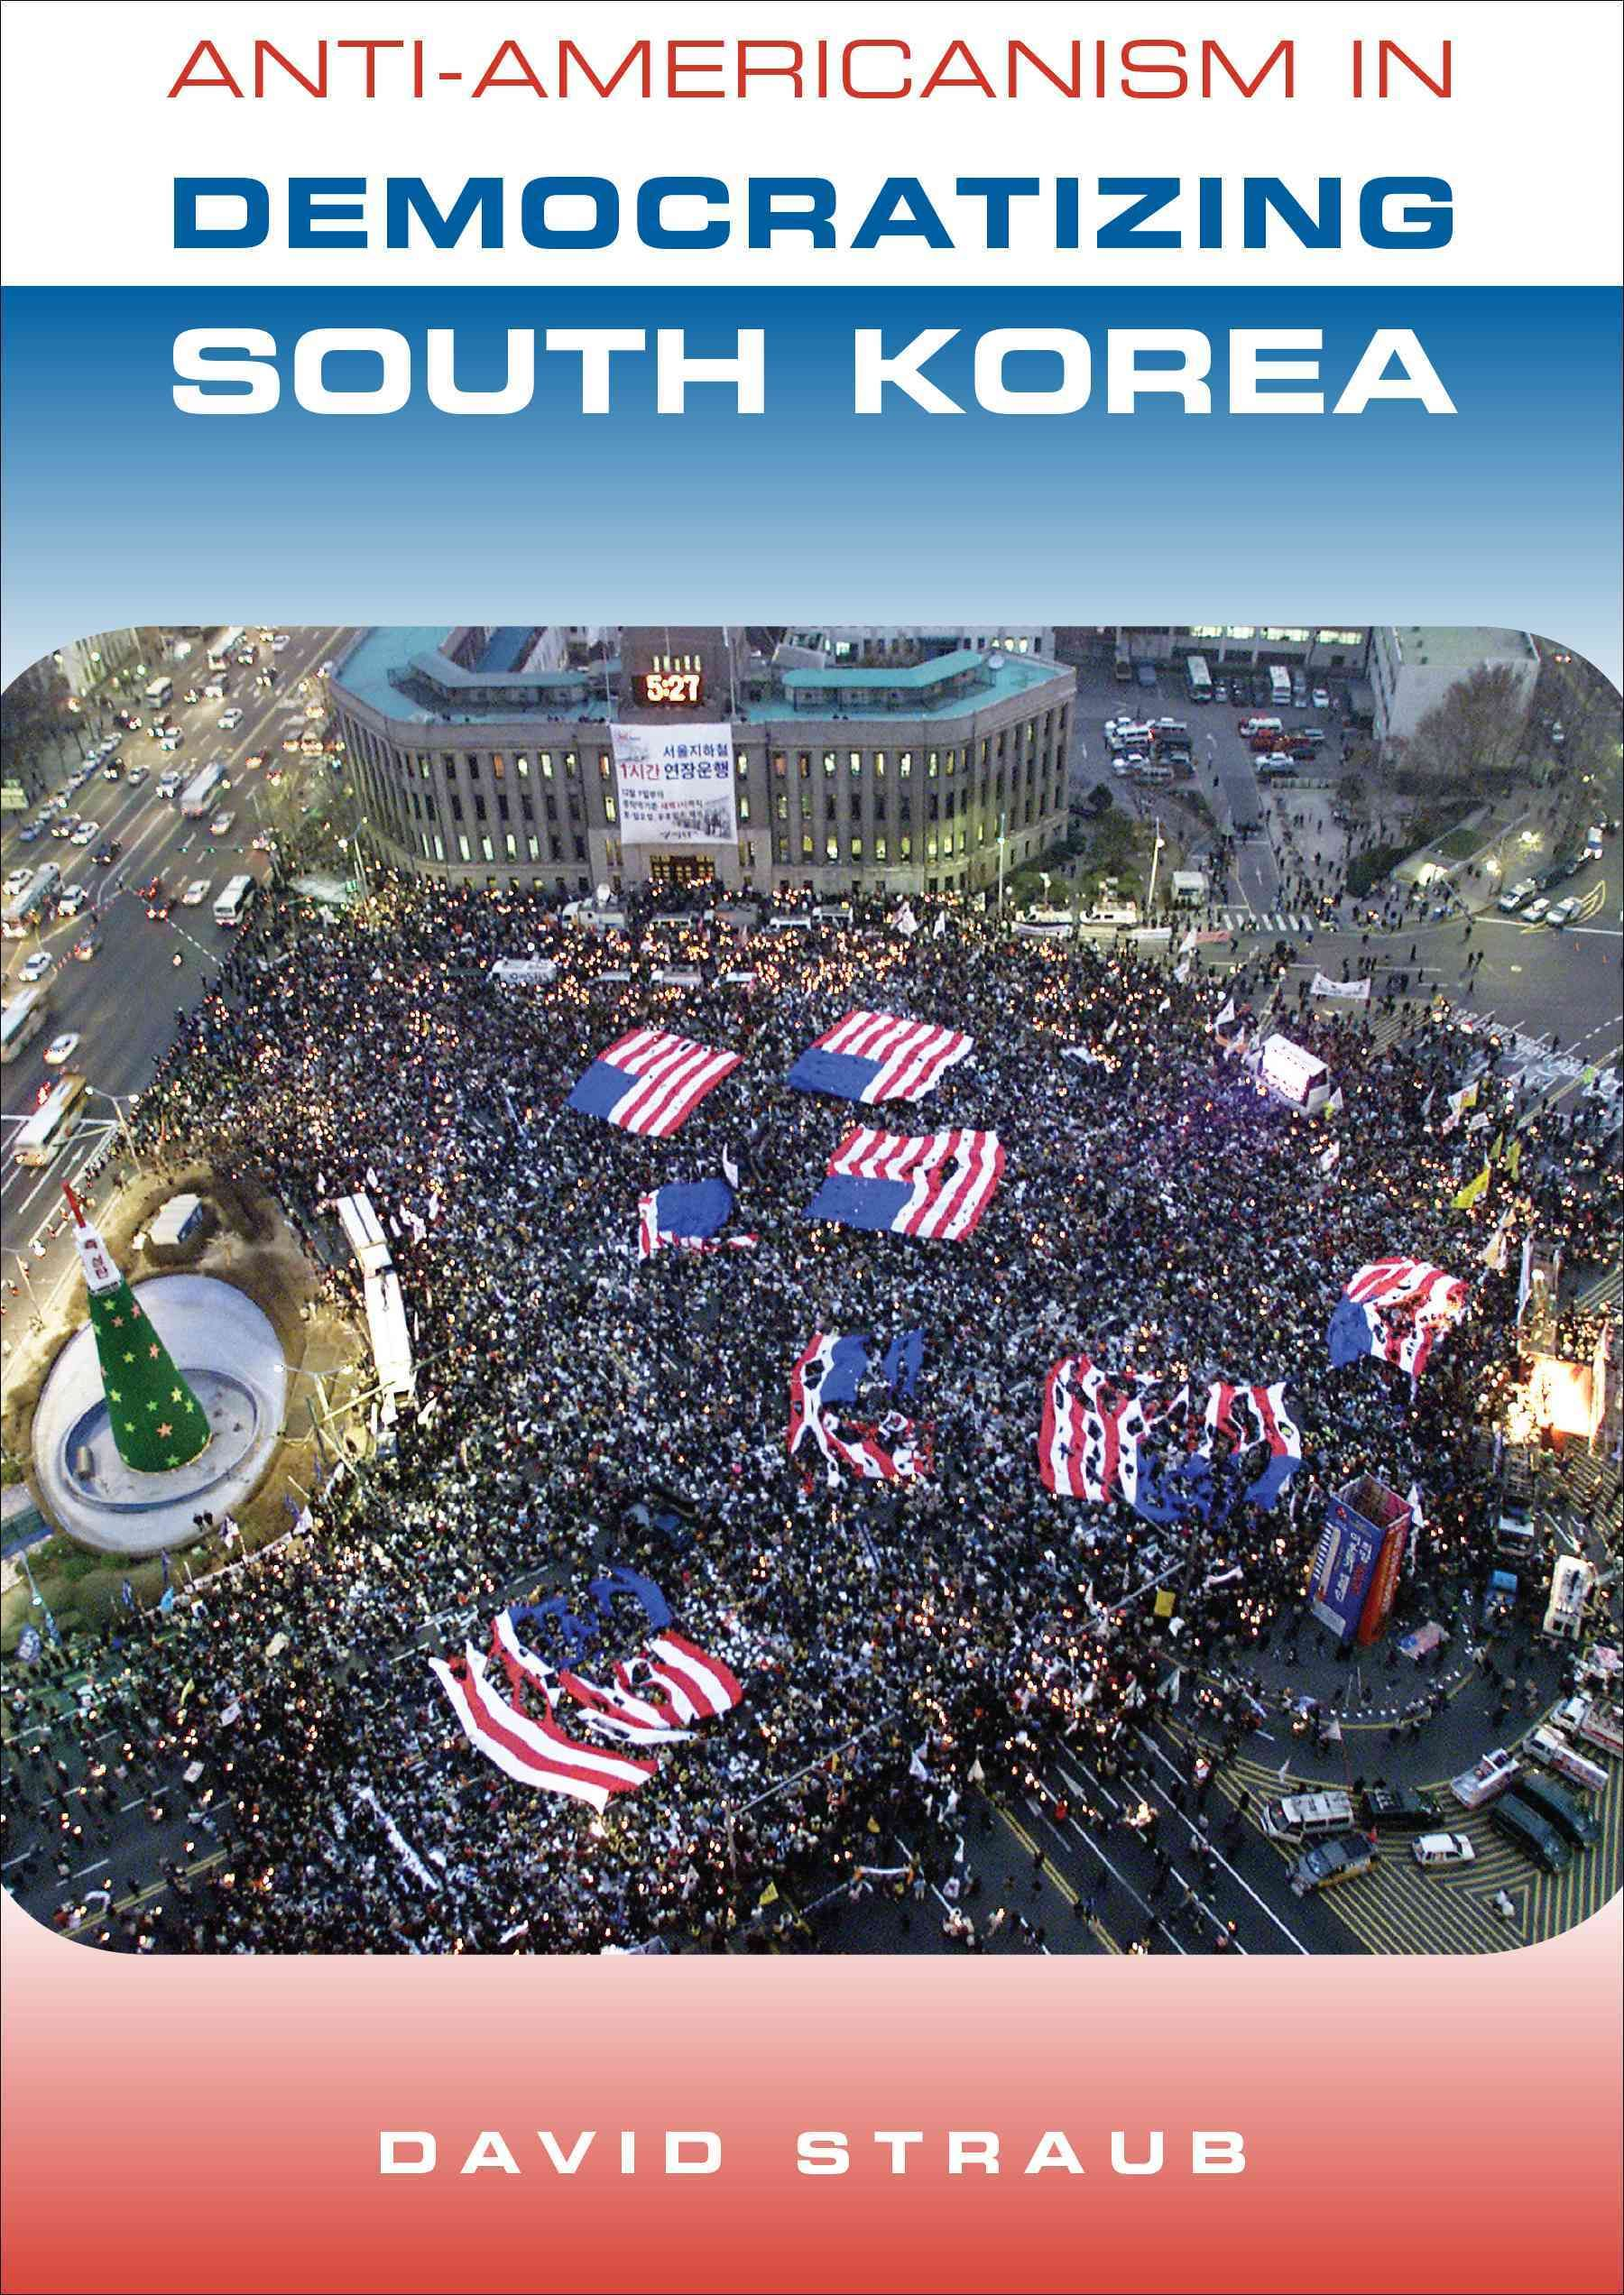 Anti-Americanism in Democratizing South Korea